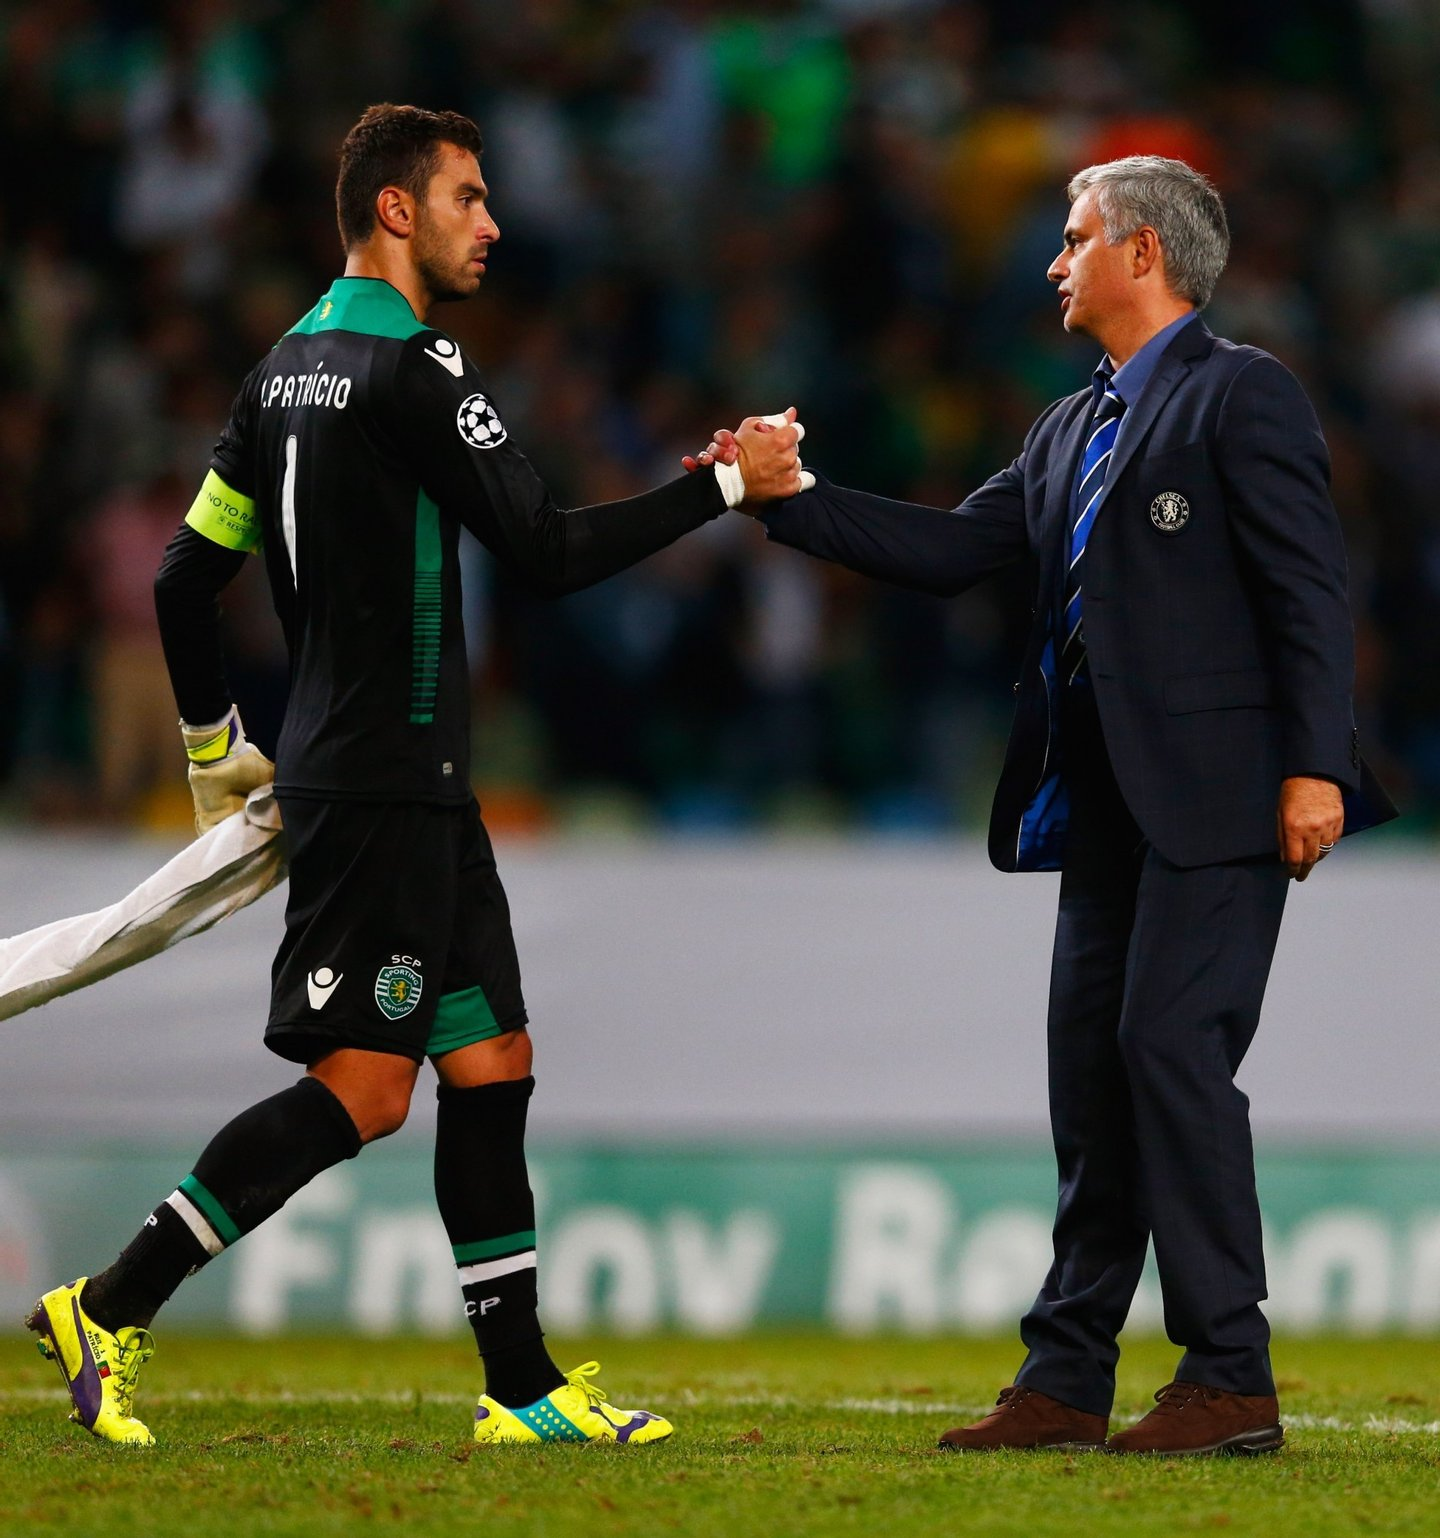 LISBON, PORTUGAL - SEPTEMBER 30:  Jose Mourinho manager of Chelsea shakes hands with Rui Patricio of Sporting Lisbon after the UEFA Champions League Group G match between Sporting Clube de Portugal and Chelsea FC at Estadio Jose Alvalade on September 30, 2014 in Lisbon, Portugal.  (Photo by Julian Finney/Getty Images)